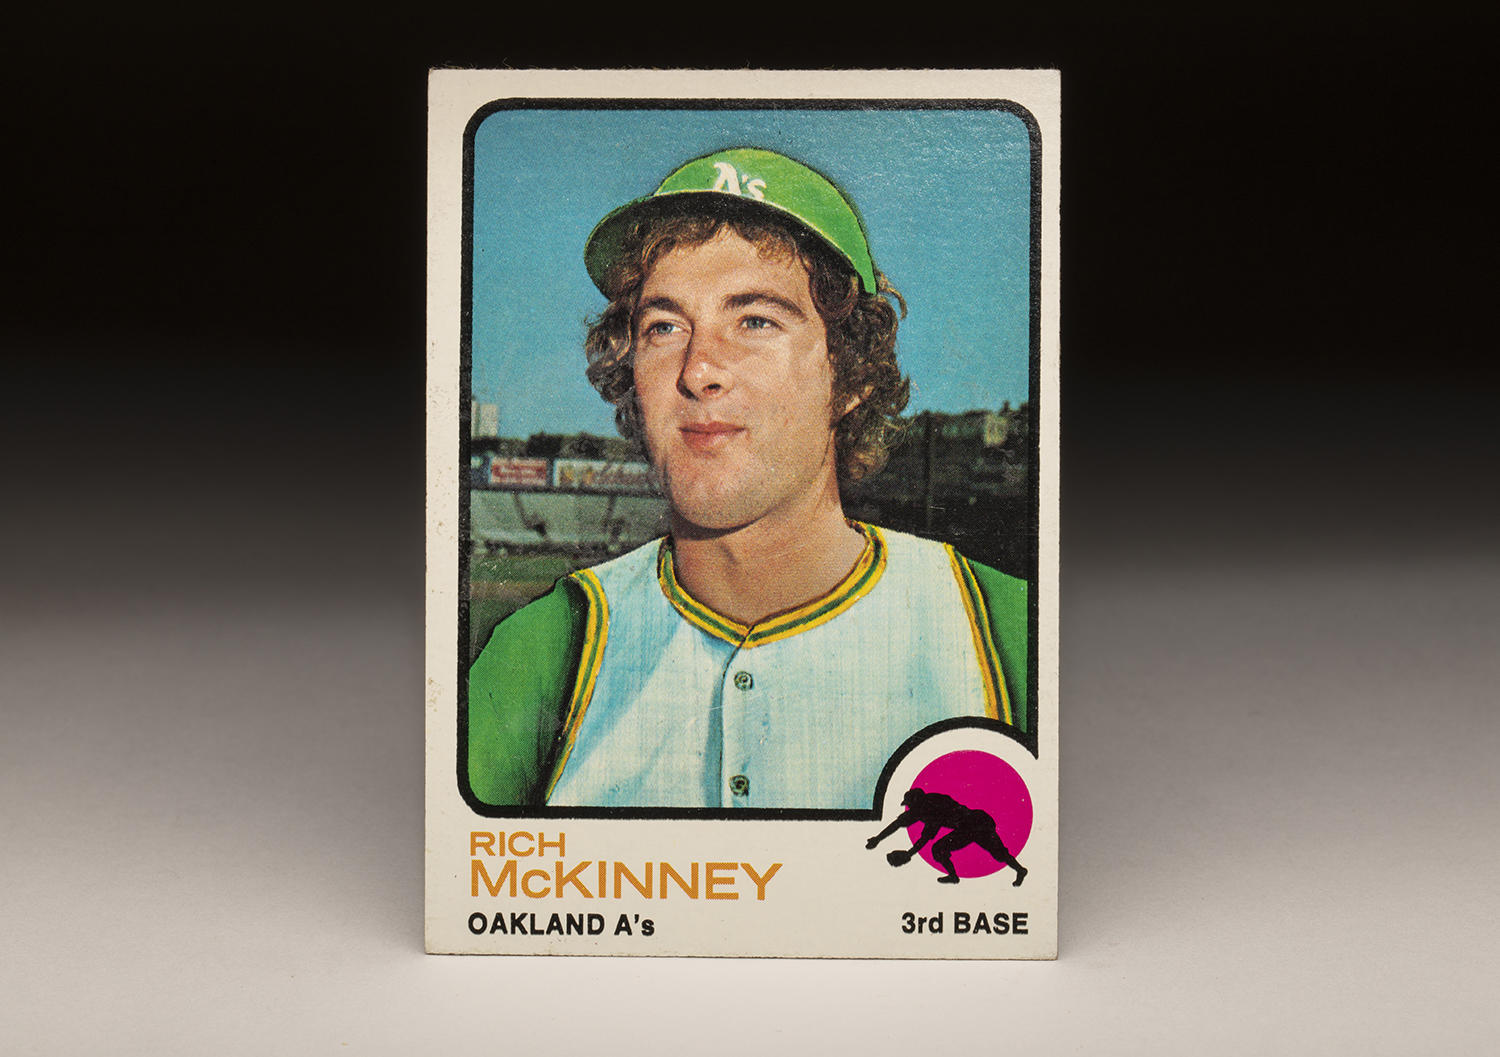 In order to accommodate the fact that he had been traded from New York to Oakland during the winter, an artist at Topps airbrushed a green helmet onto Rich McKinney's head, and included green sleeves and gold piping on the jersey. (Milo Stewart Jr./National Baseball Hall of Fame and Museum)